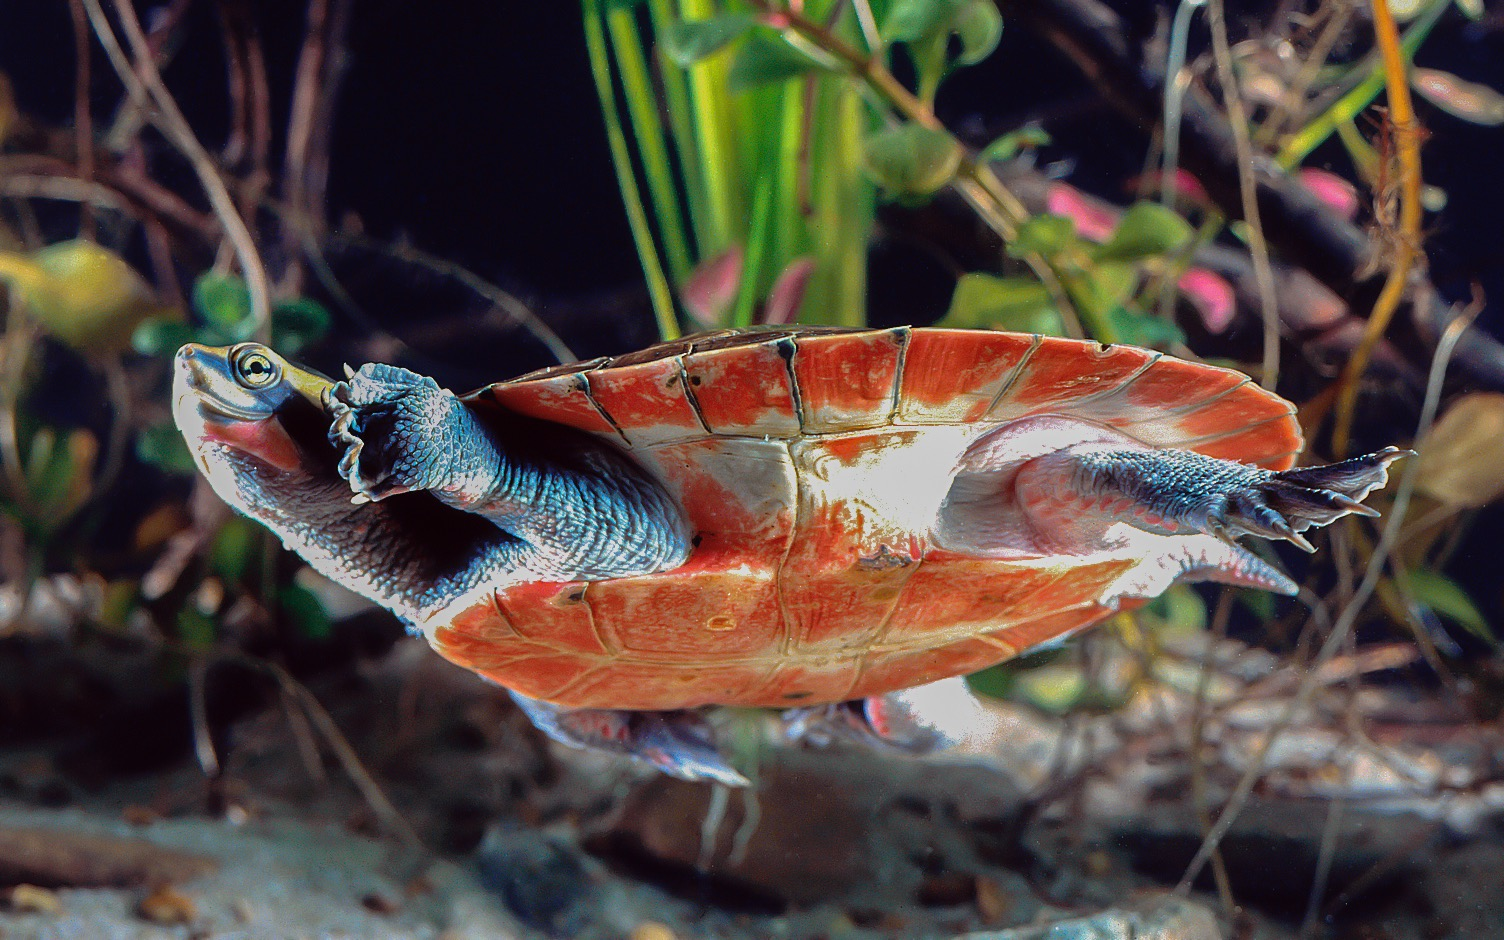 Biologists at the University of California, Davis are reporting that 90 percent of the world's coastal freshwater turtles will struggle with rising sea levels by the end of this century.